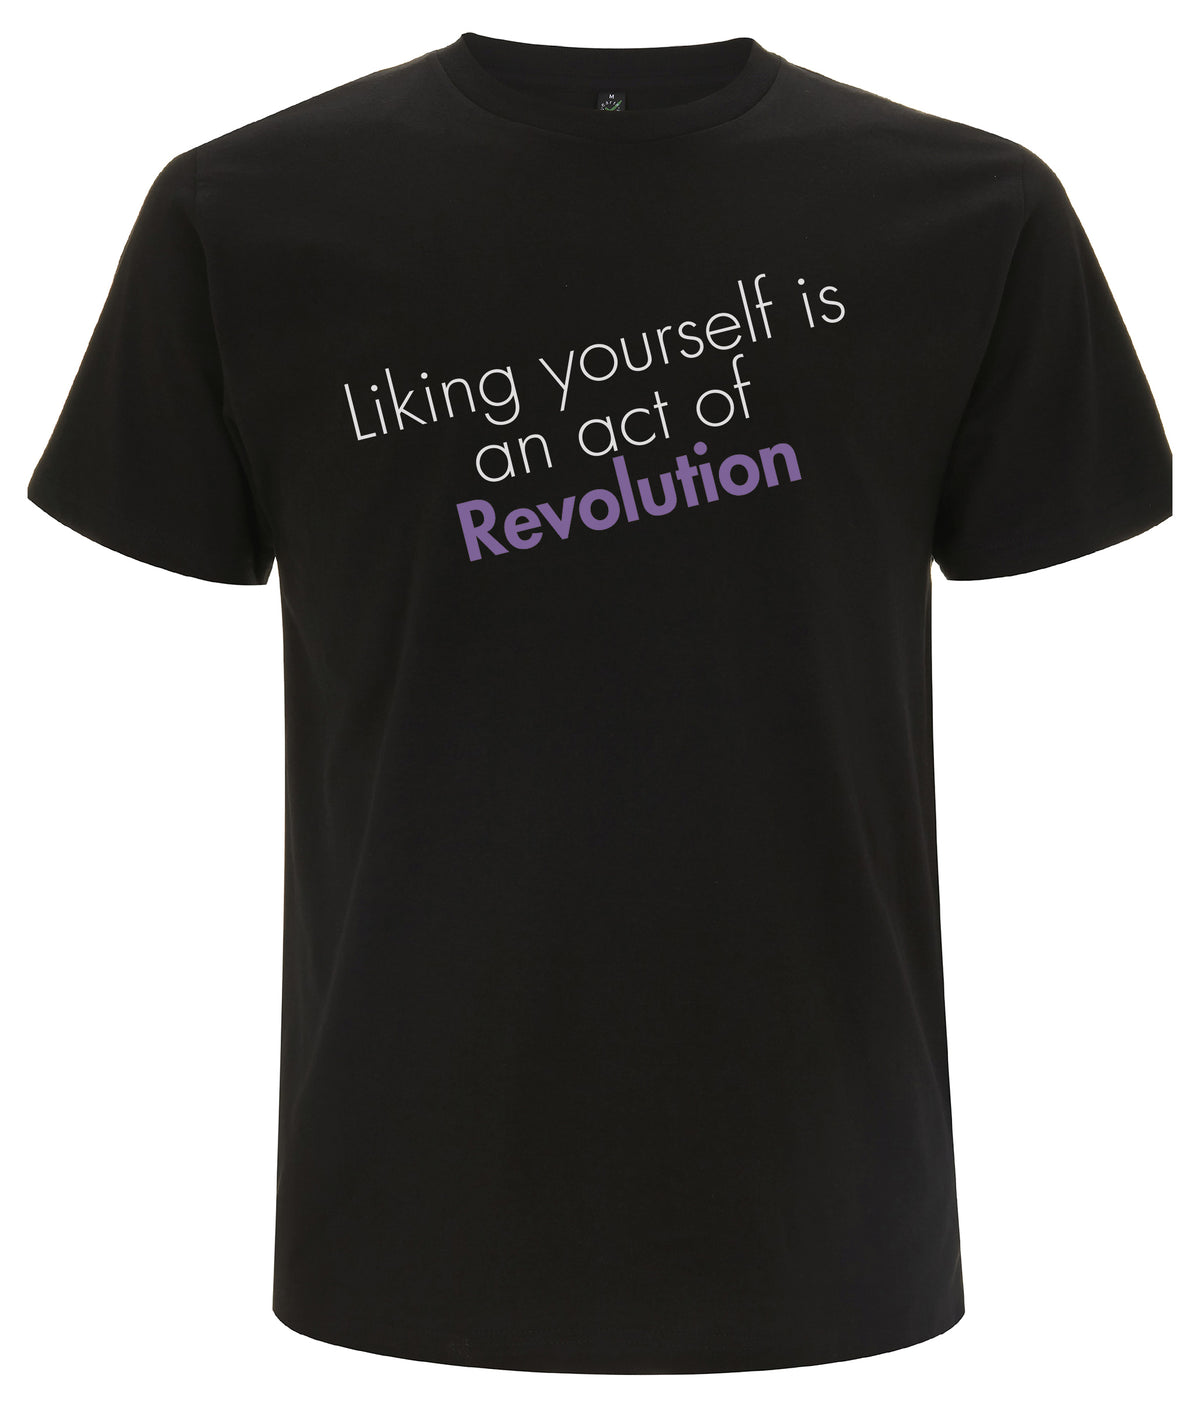 Liking Yourself Is An Act Of Revolution Organic Feminist T Shirt Black